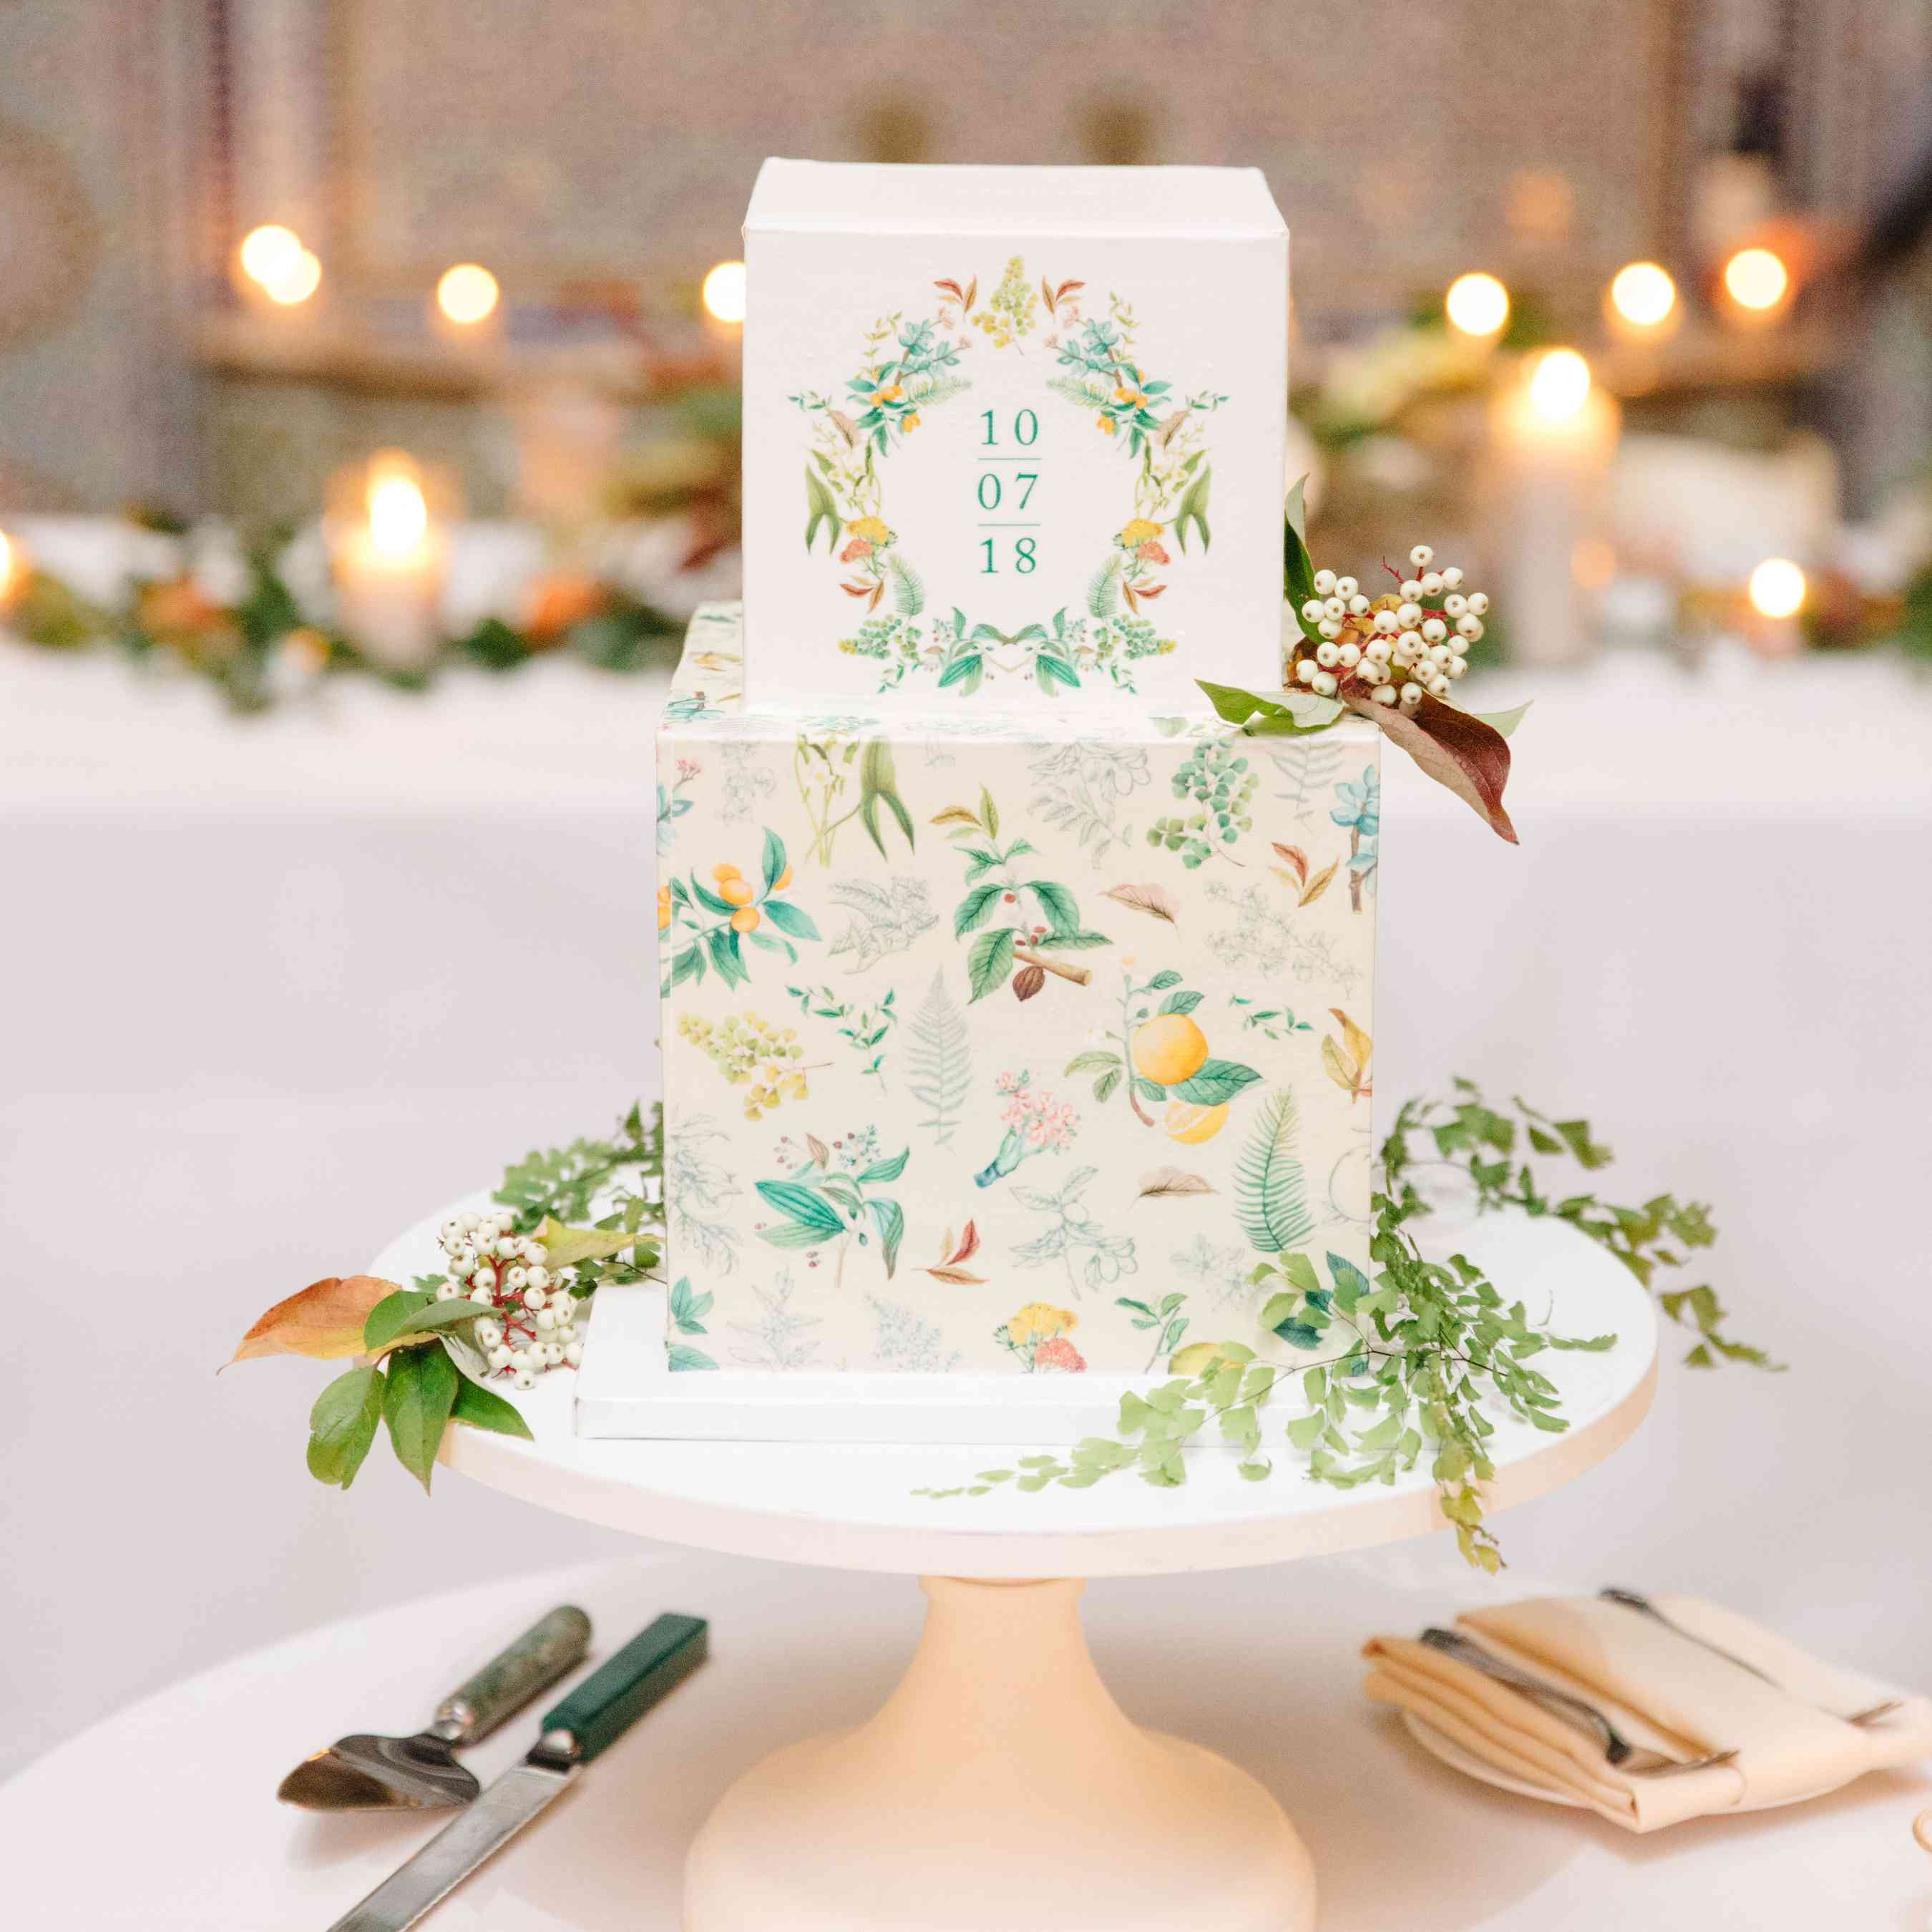 Square tiered wedding cake with hand-painted details and wedding date